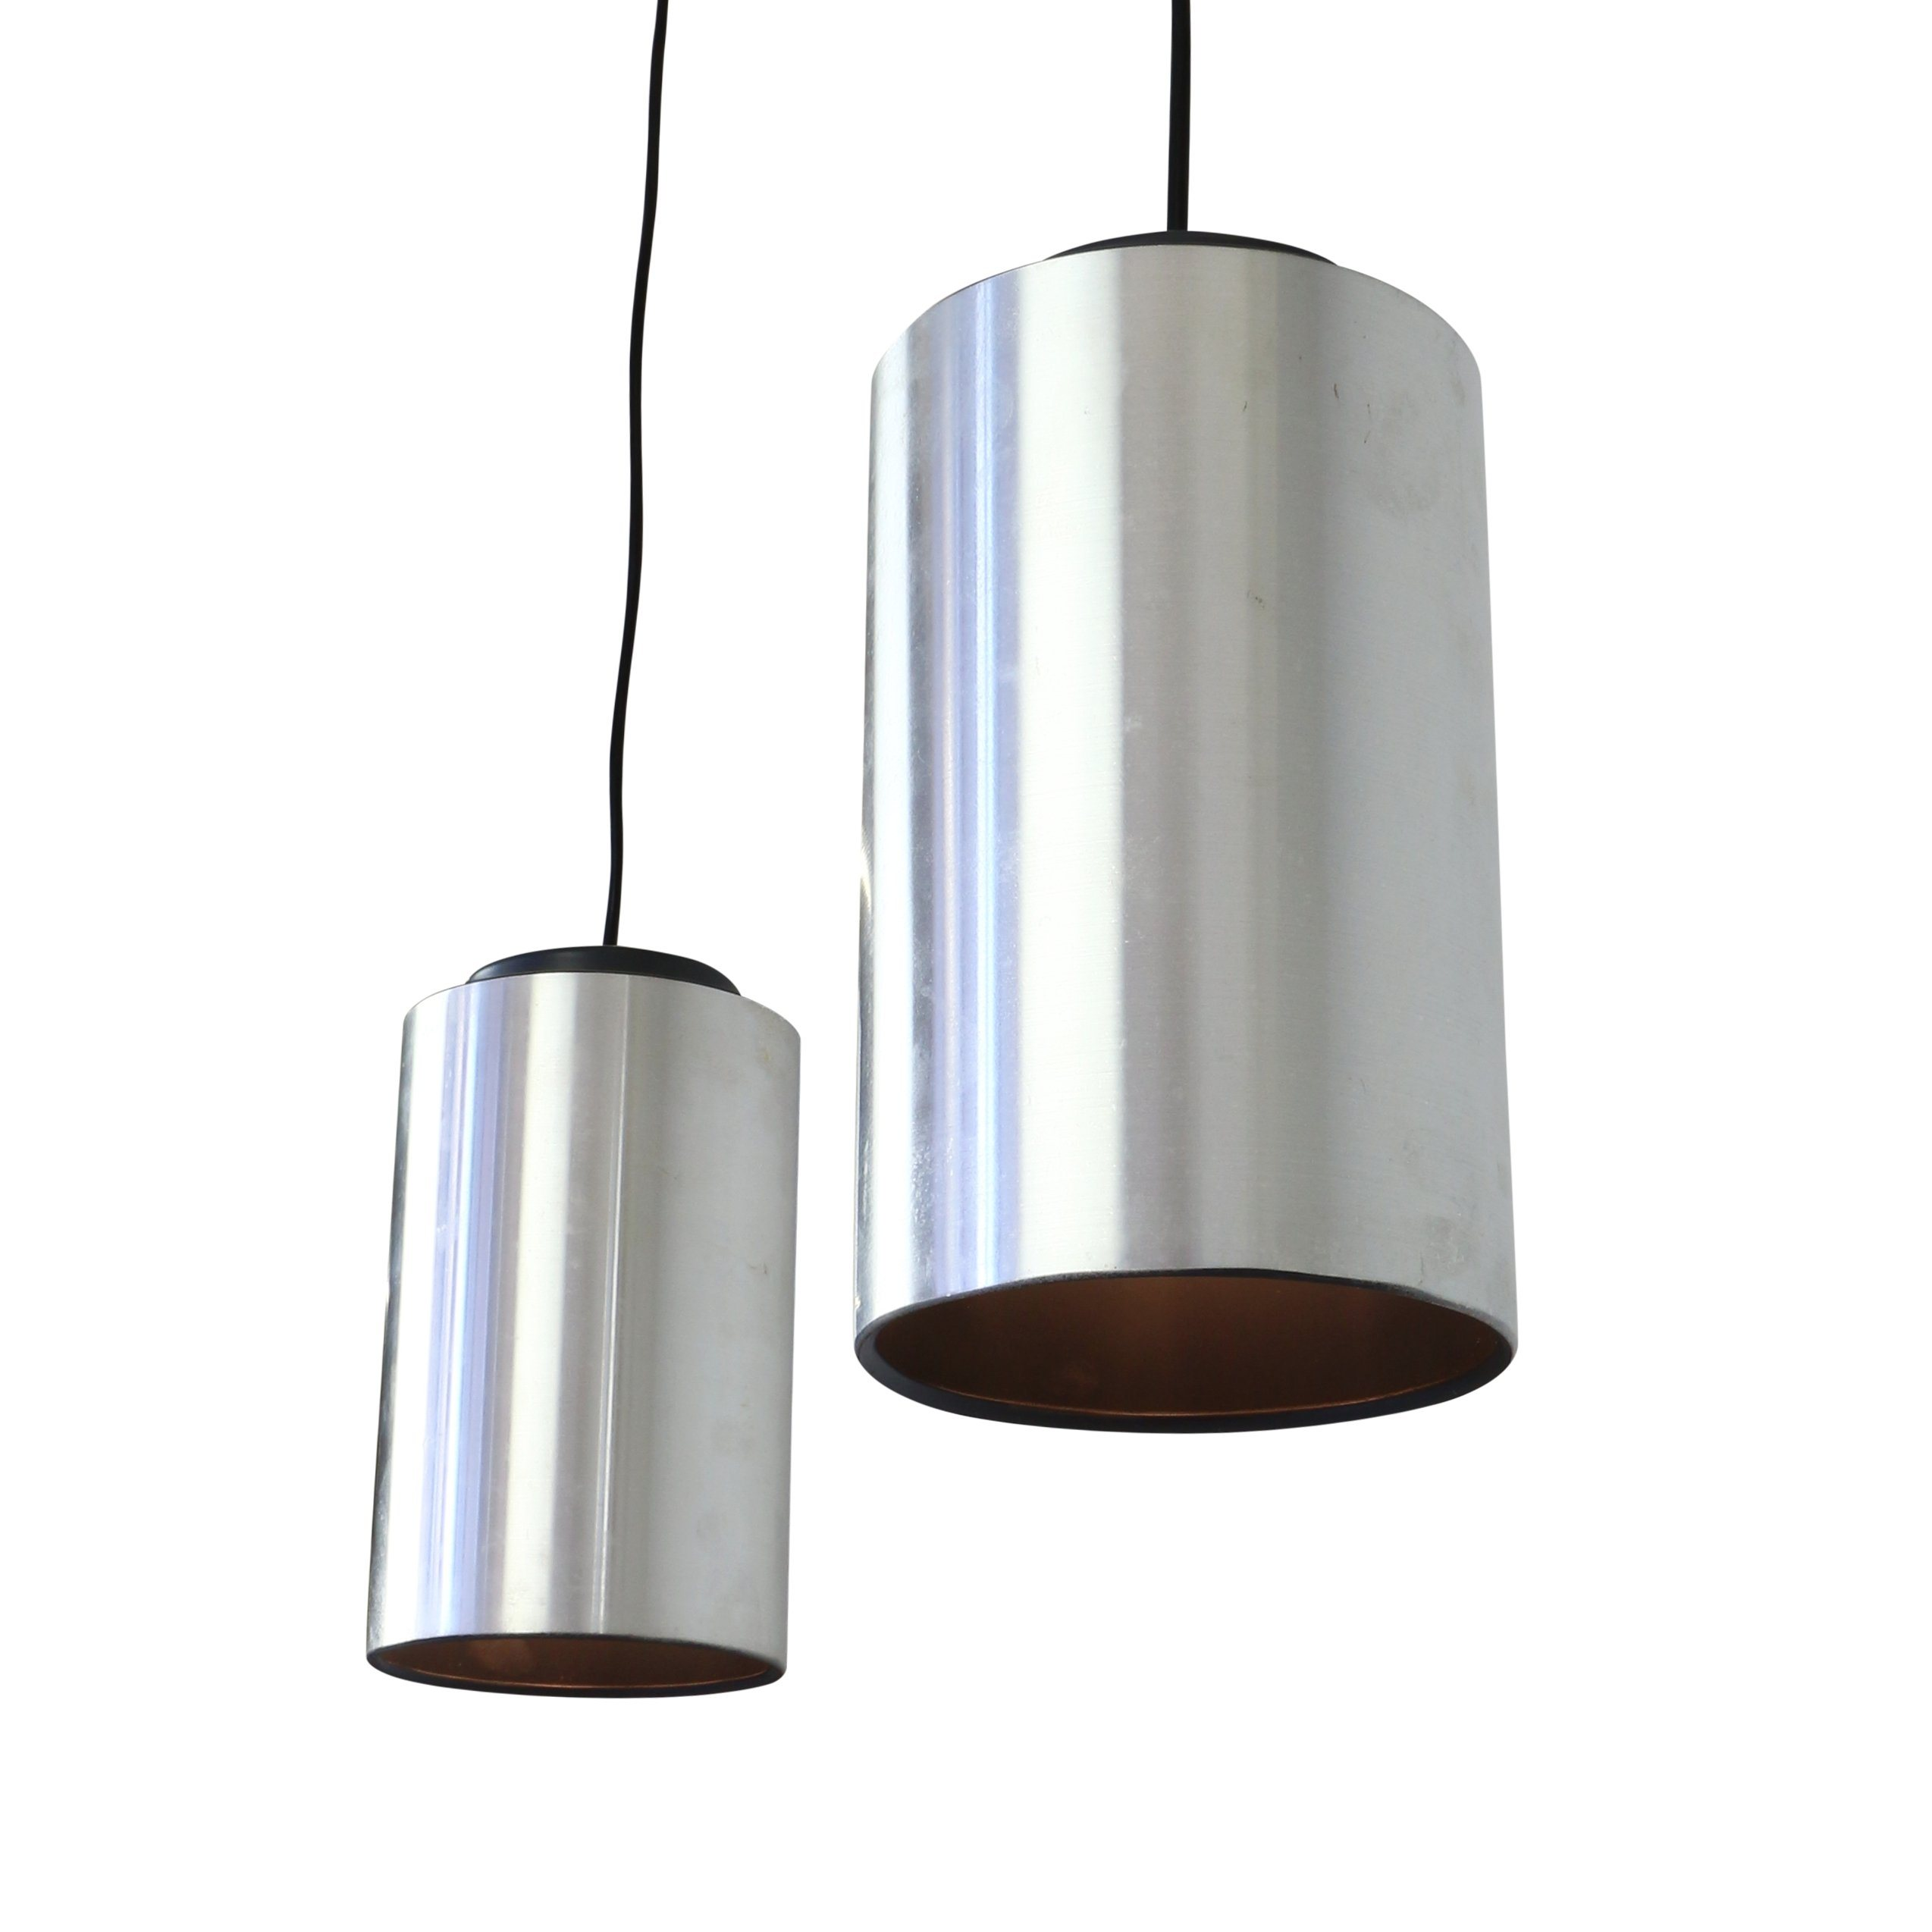 light cylinder westmore canada view lights lowe s larger fabric pendant lighting large